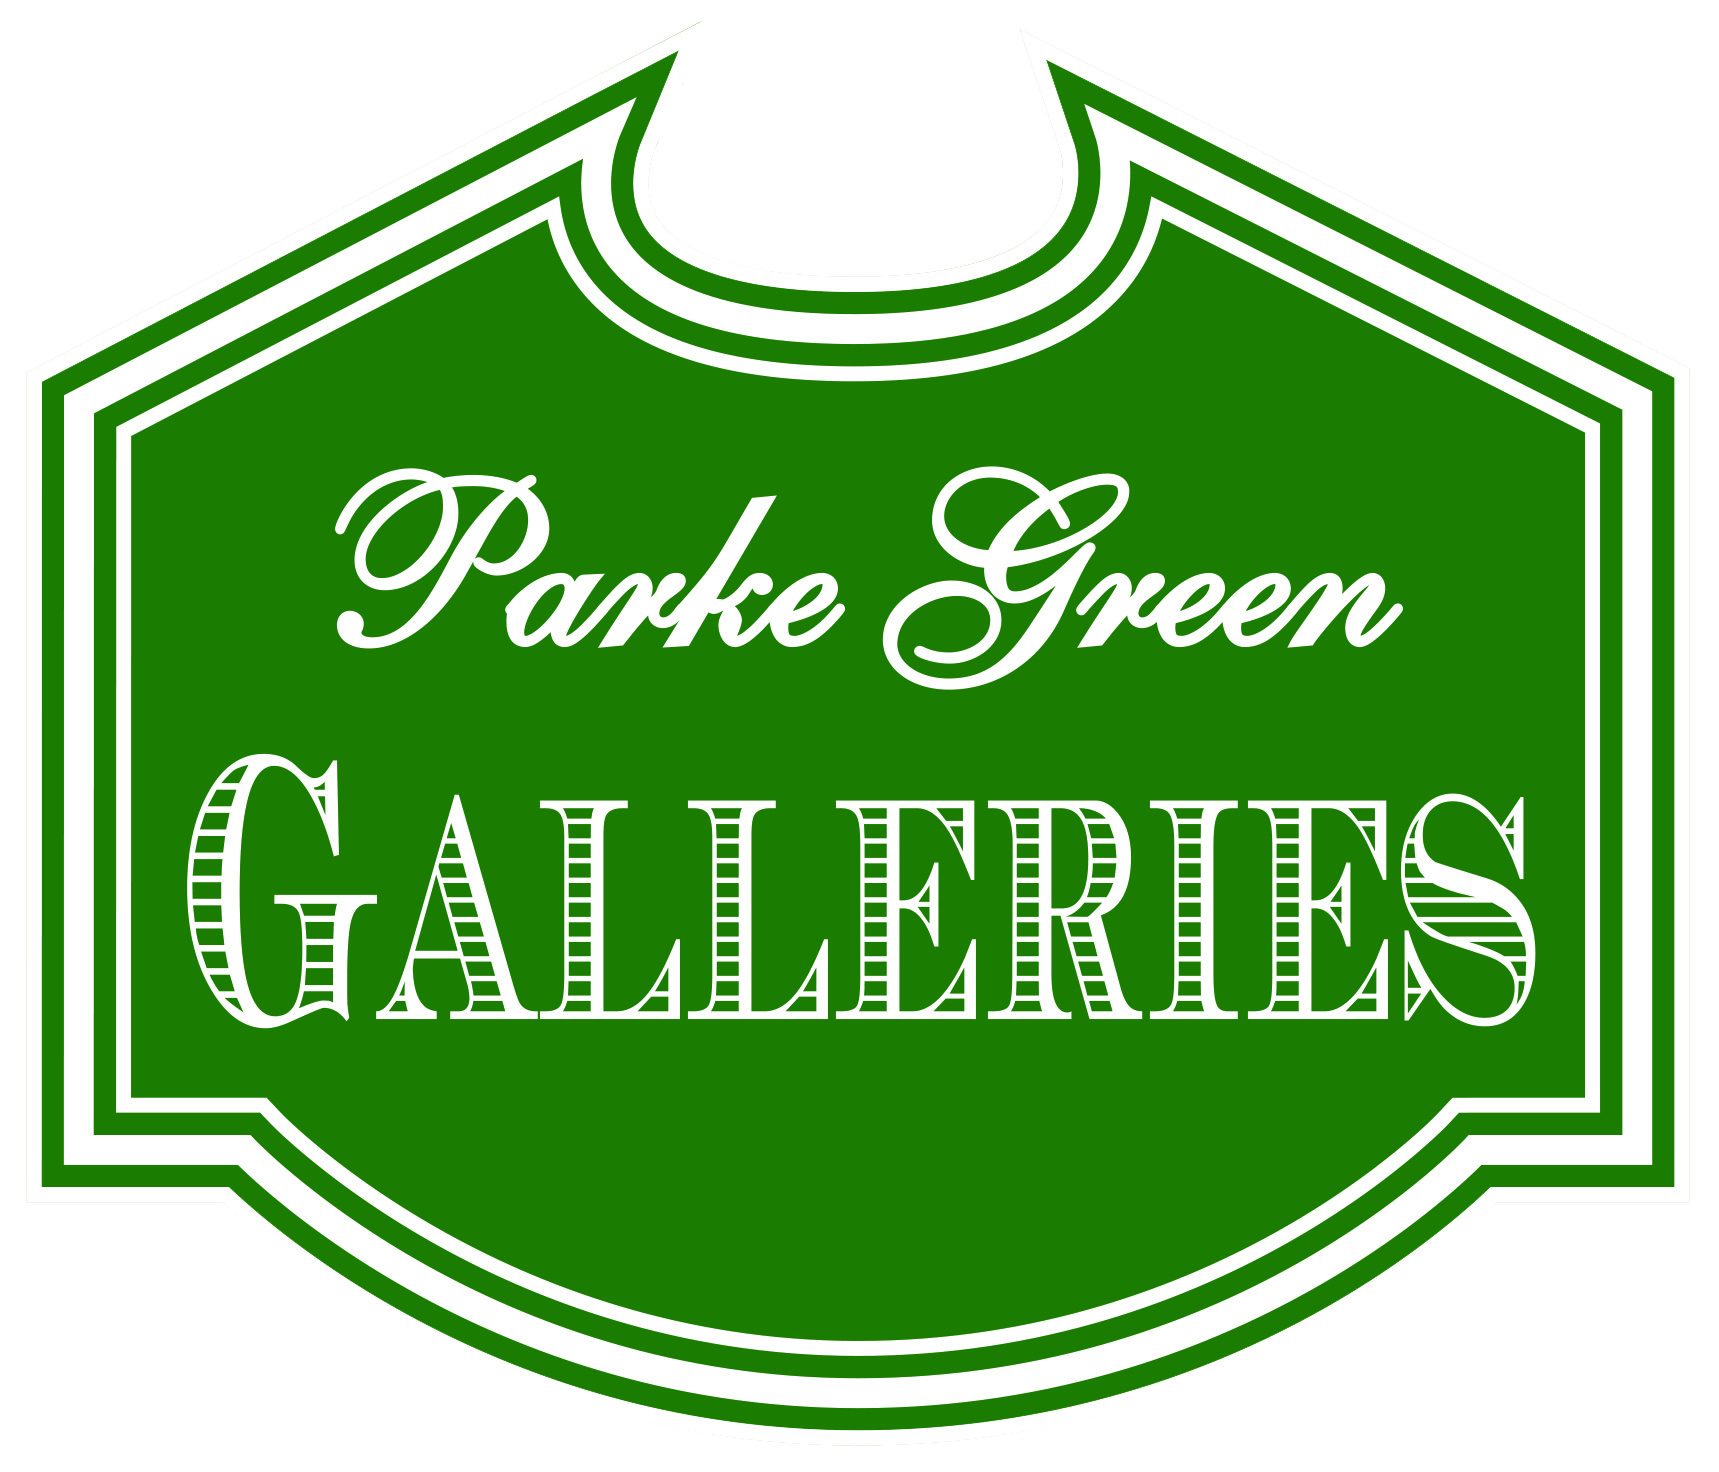 Parke-Green-Galleries-logo-CMYK.jpg